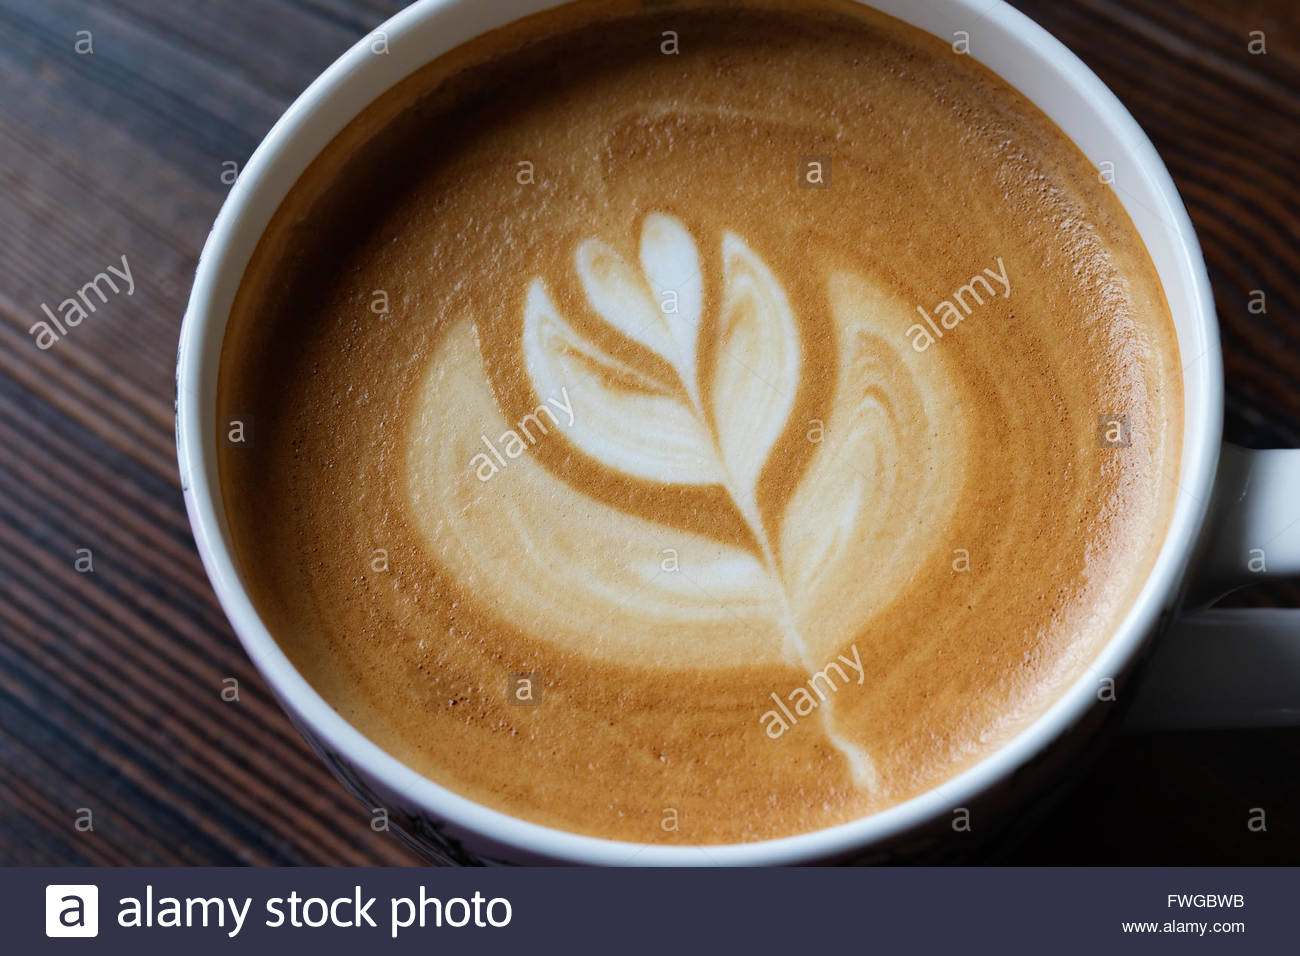 Cup of latte art coffee on wooden table - Stock Image